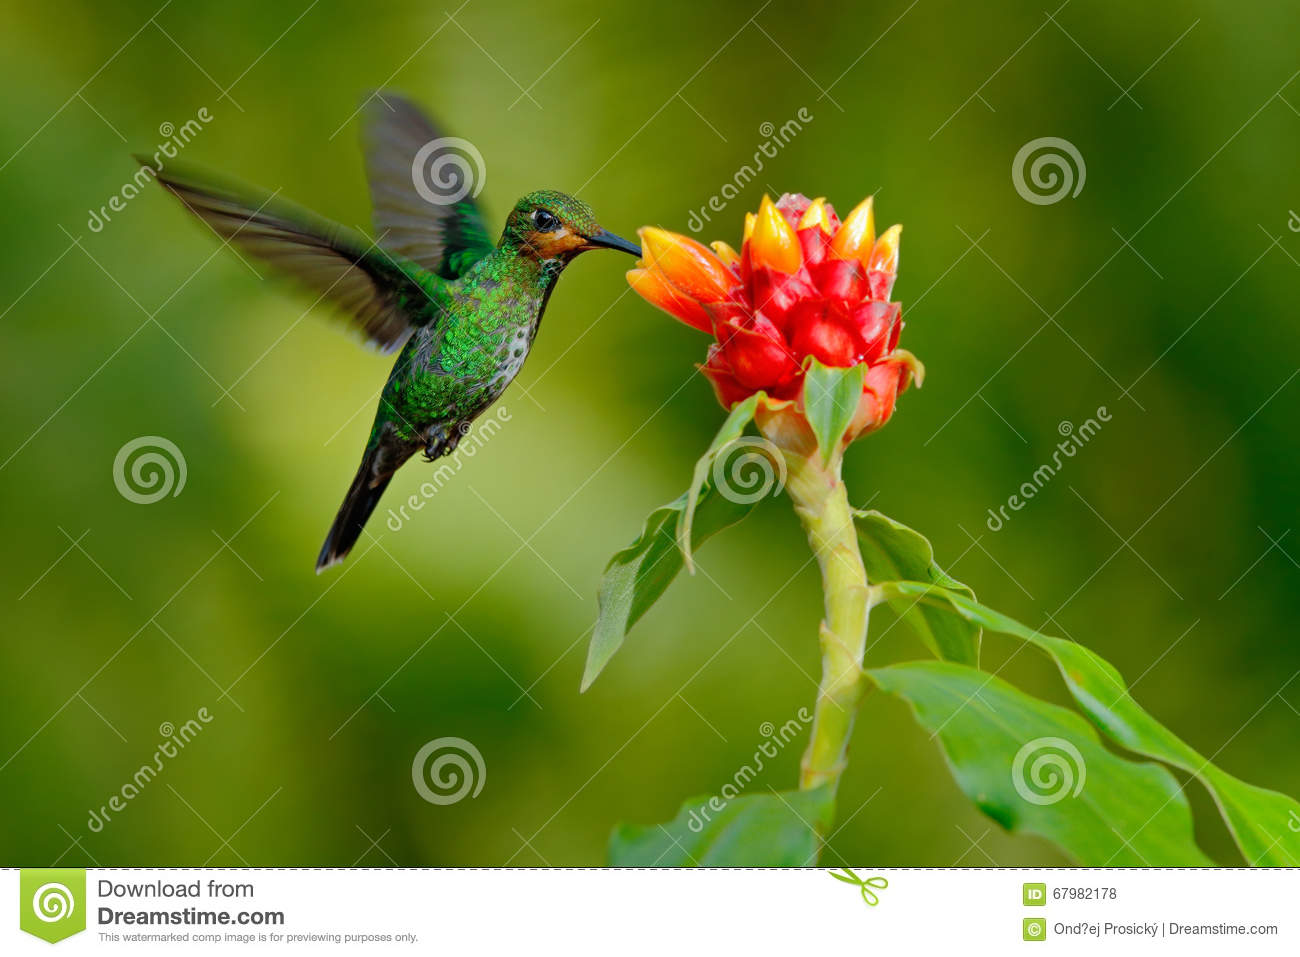 Hummingbird Green-crowned Brilliant, Heliodoxa jacula, green bird from Costa Rica flying next to beautiful red flower with clear b